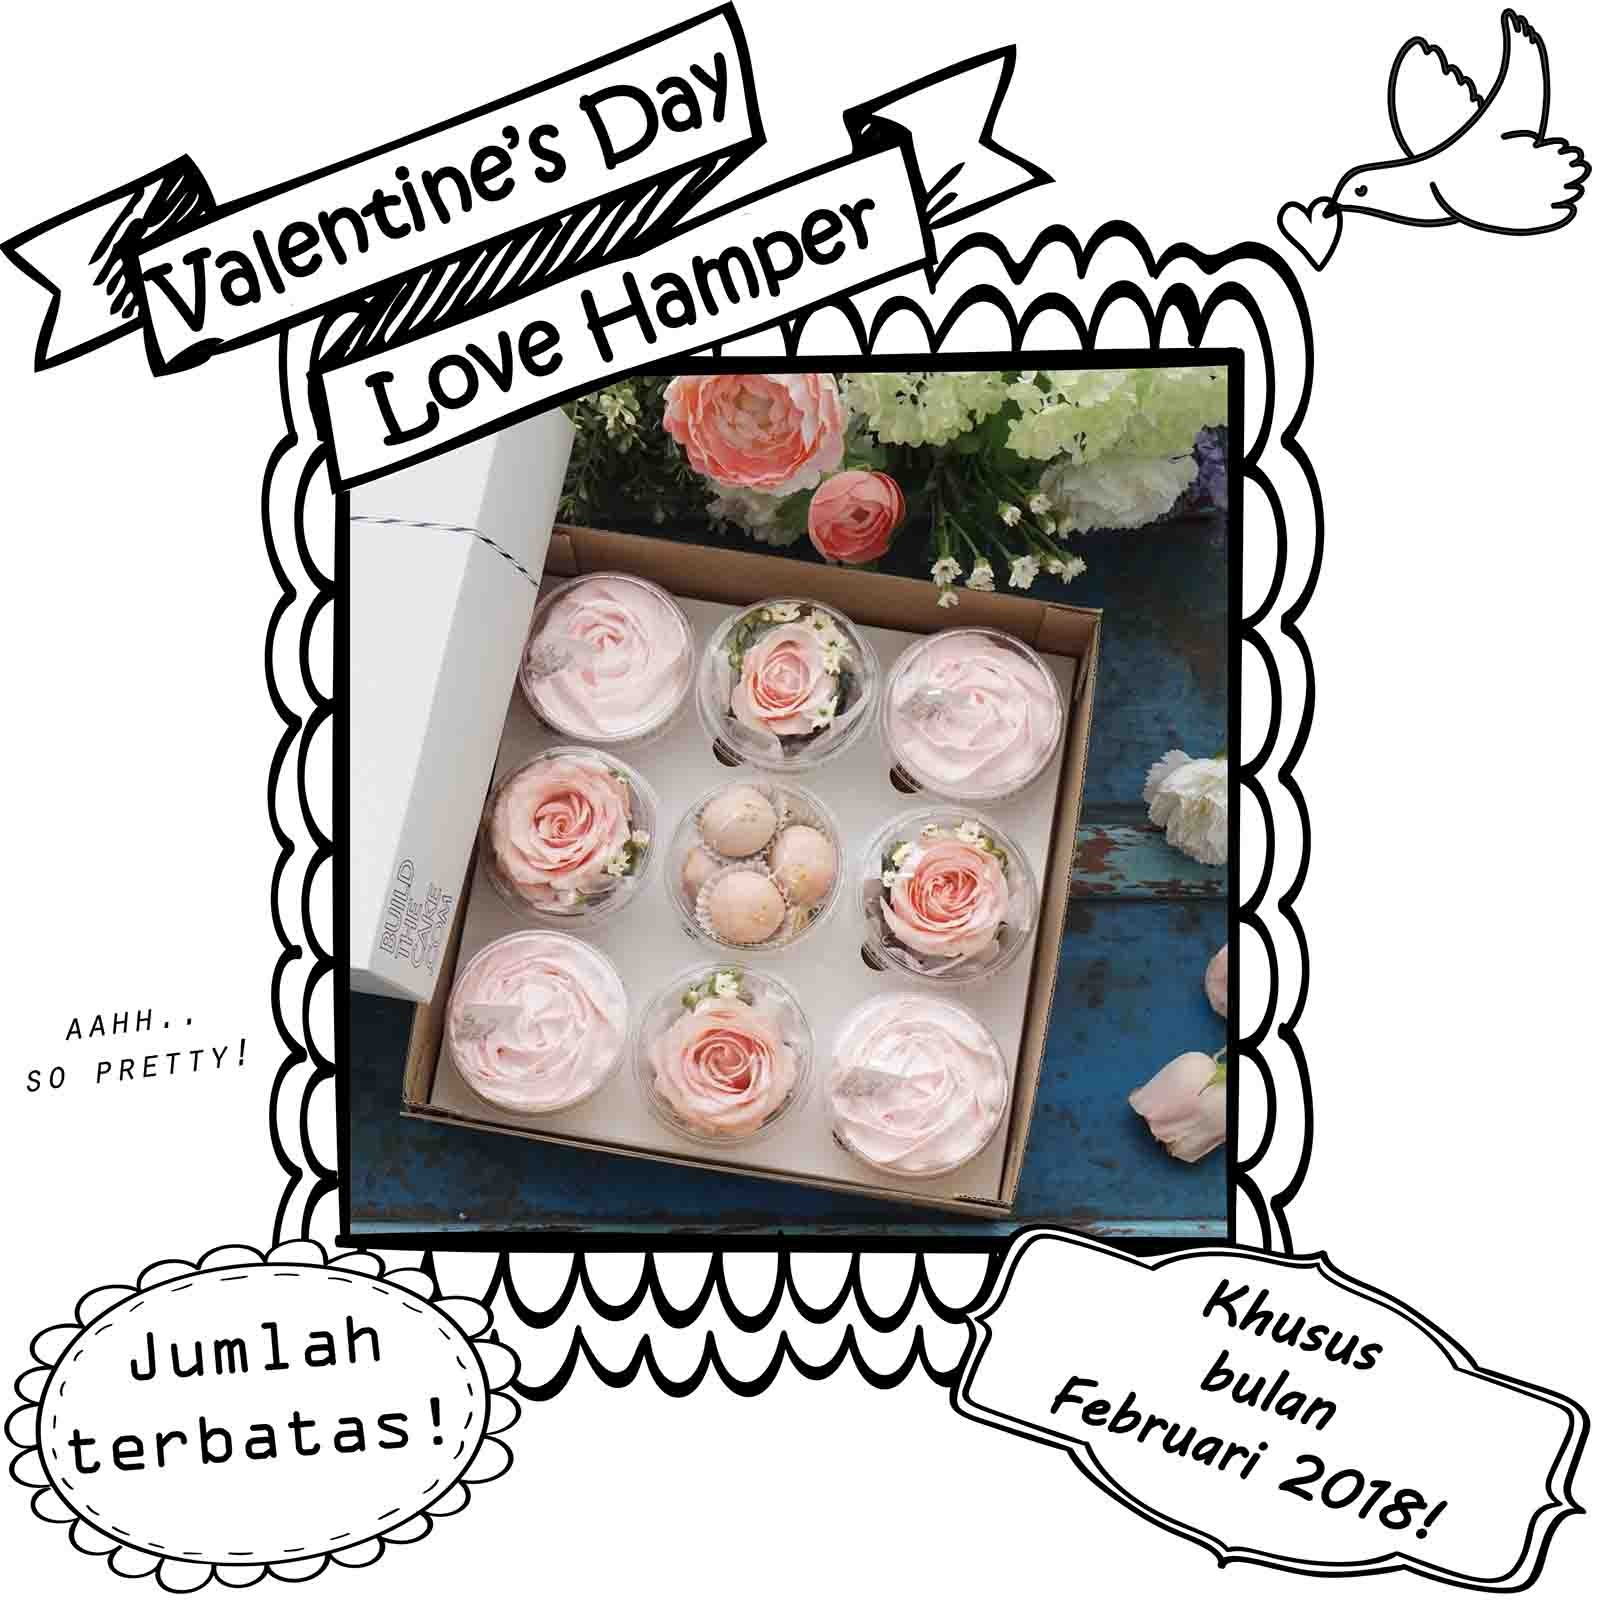 Valentine's Day Love Hamper